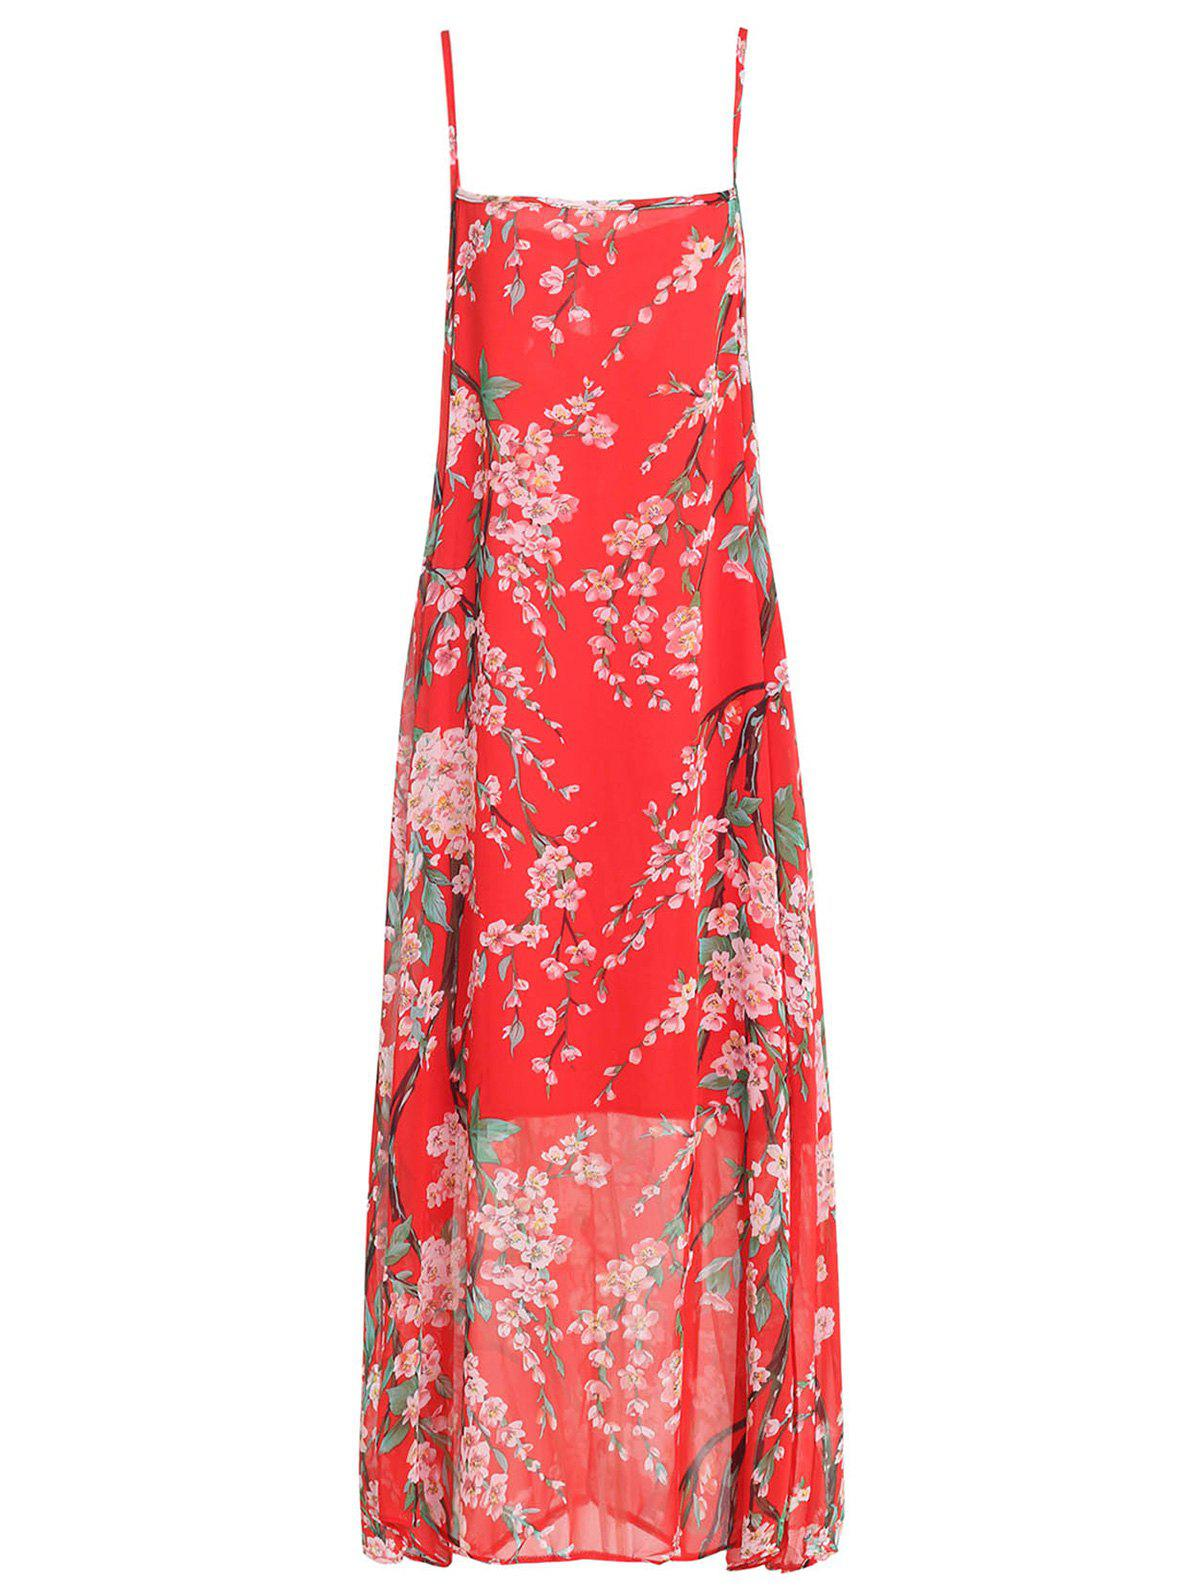 Graceful Spaghetti Strap Sleeveless Floral Print Chiffon Women's Beach Dress